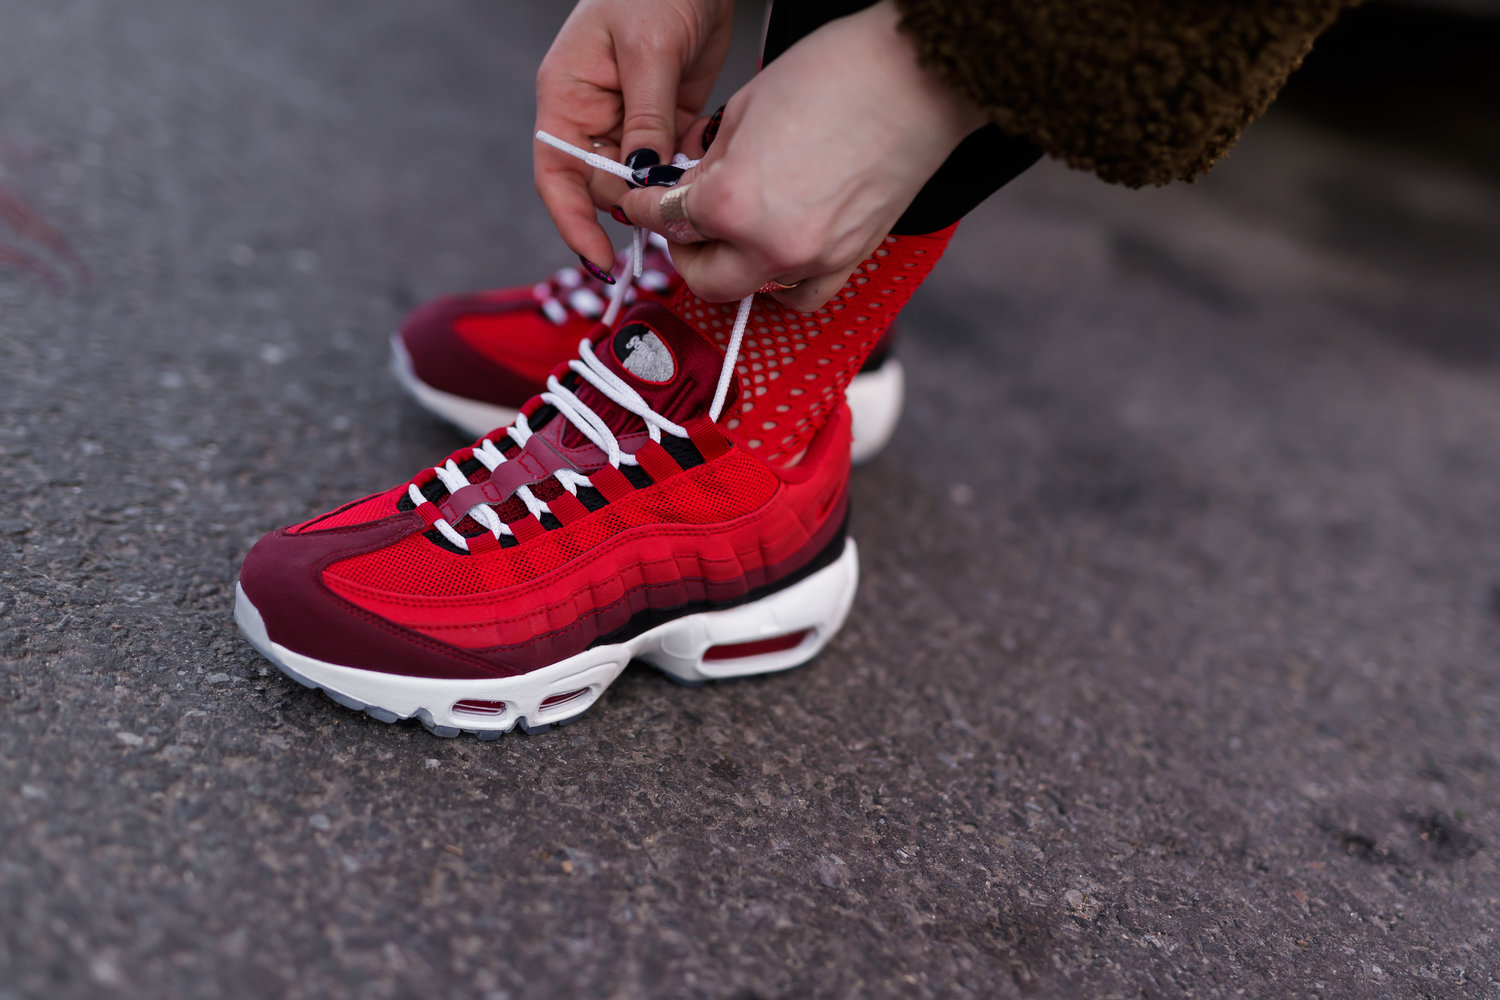 4265be08754e2 shegotgame Phoenix Collection Lookbook - Air Max 95